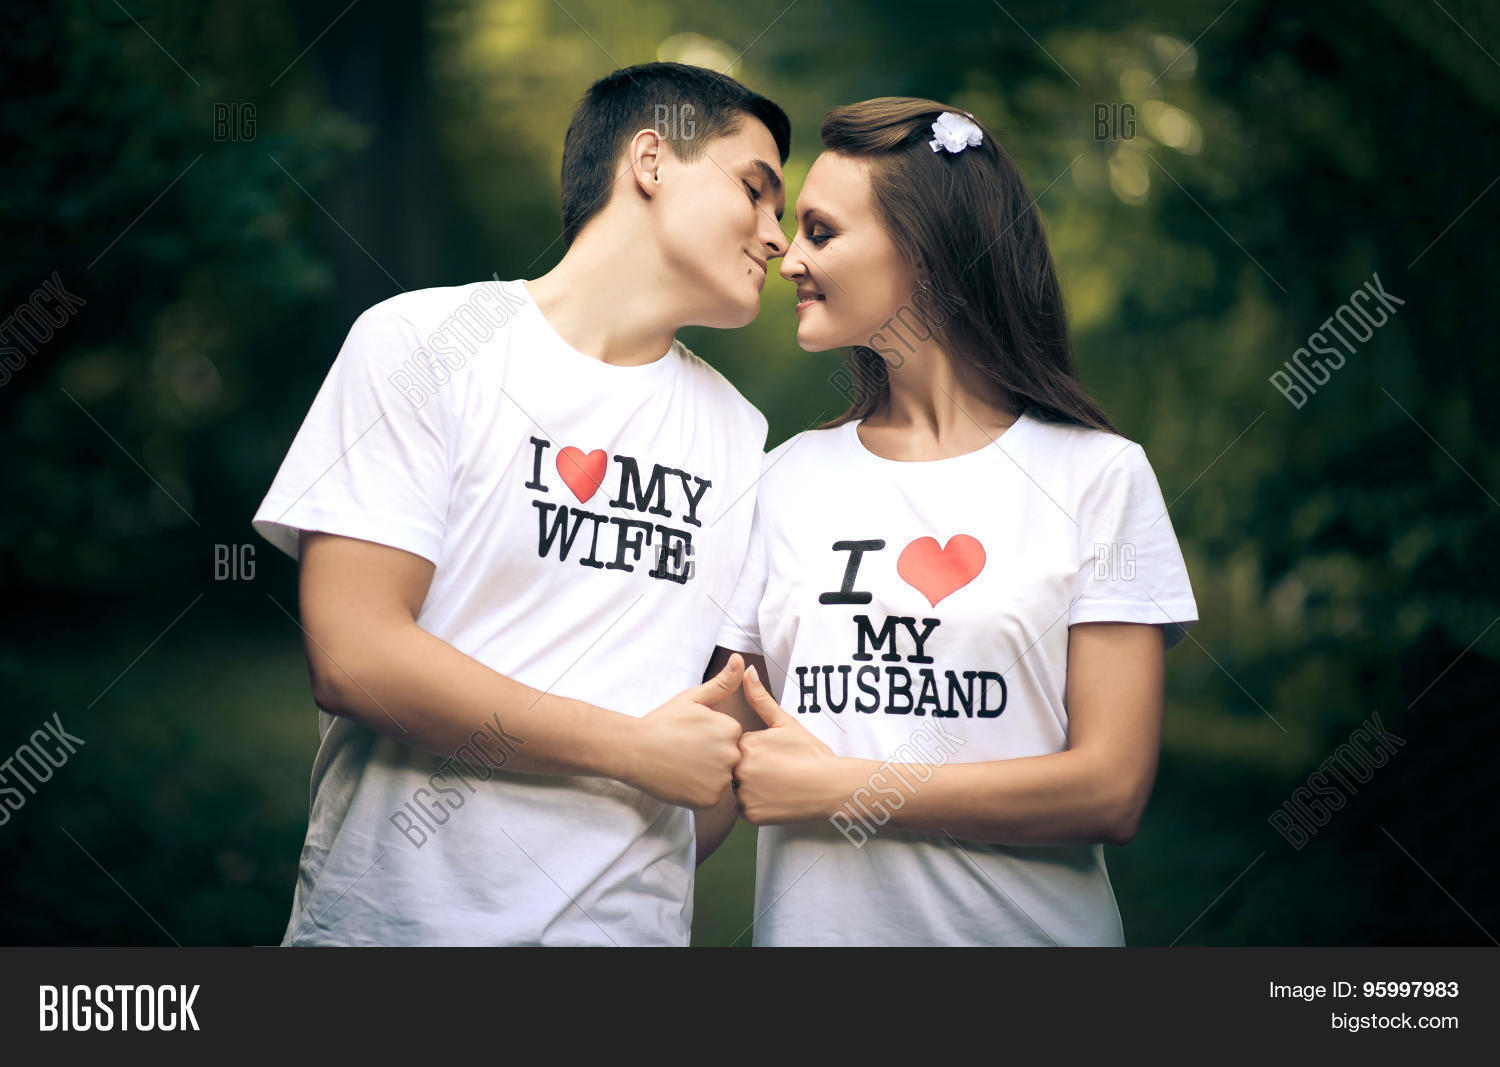 Husband and wife romance videos